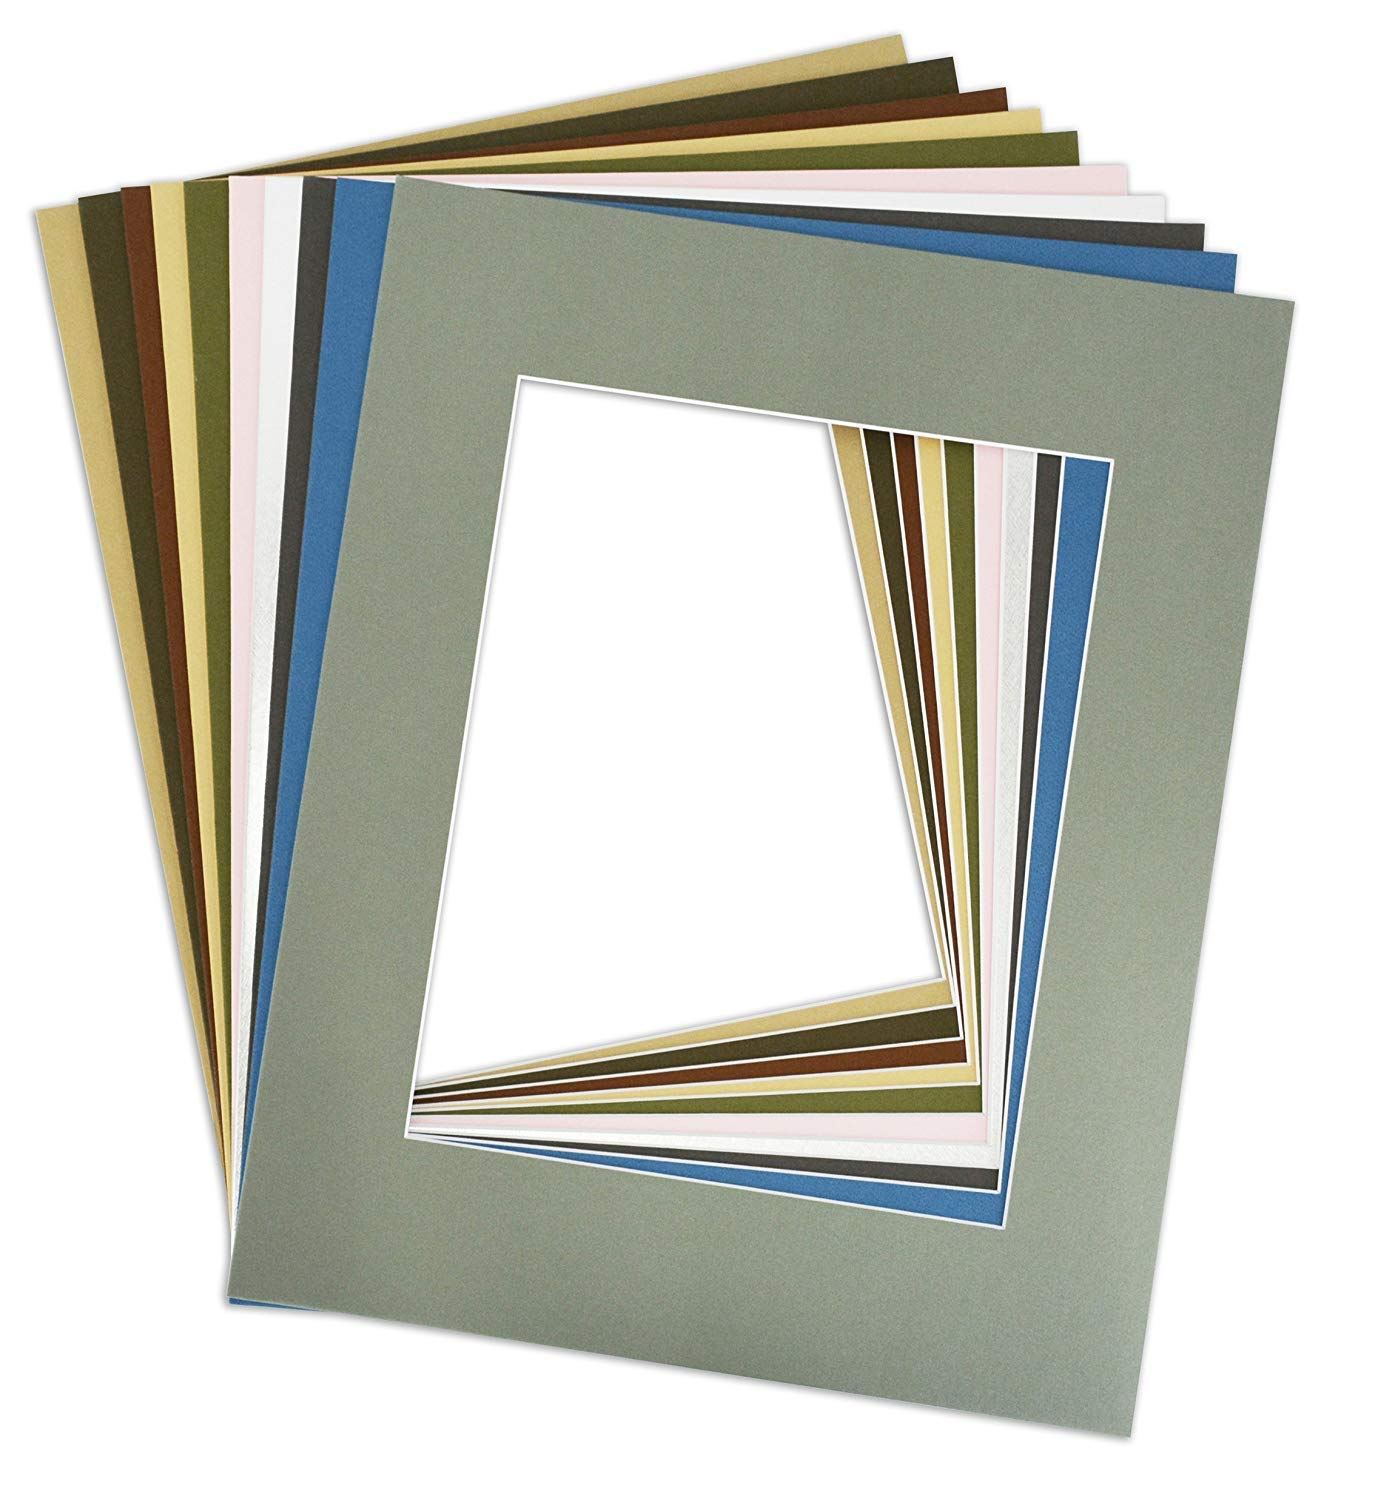 Golden State Art, Pack of 10 Mixed Colors 16x20 Picture Mats Matting with White Core Bevel Cut for 11x14 Pictures by Golden State Art